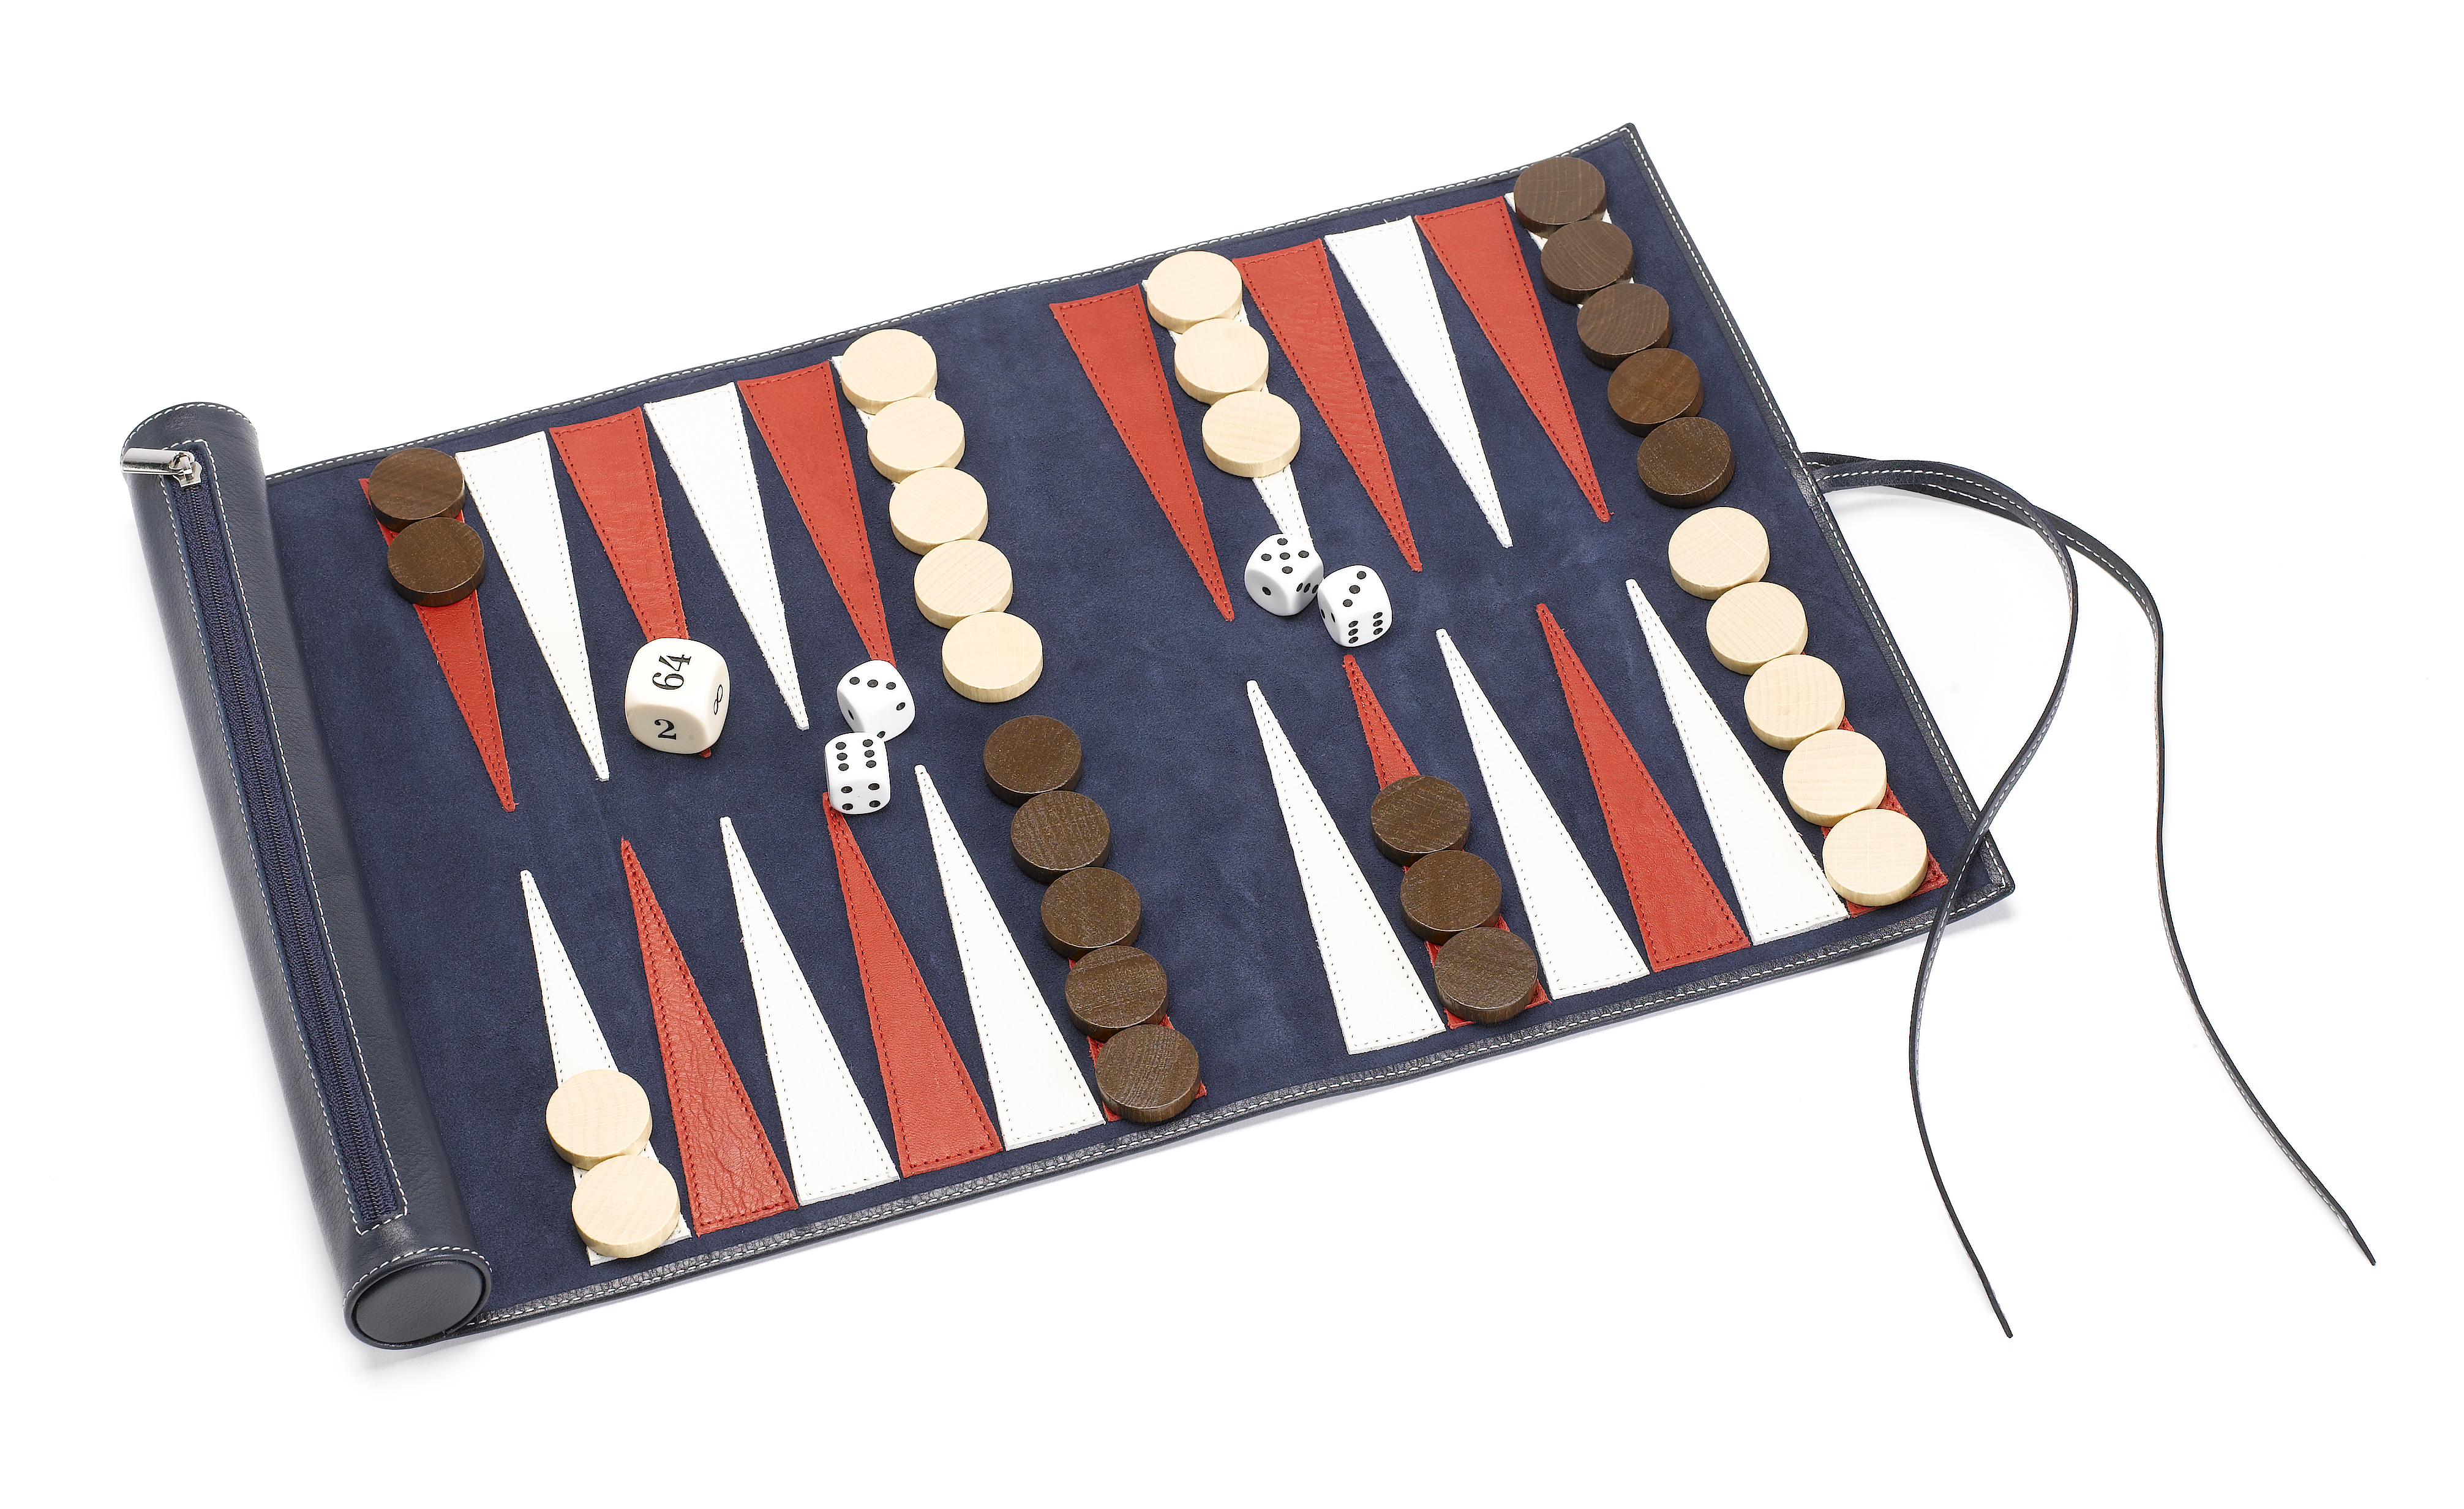 1272034099travel_backgammon_11